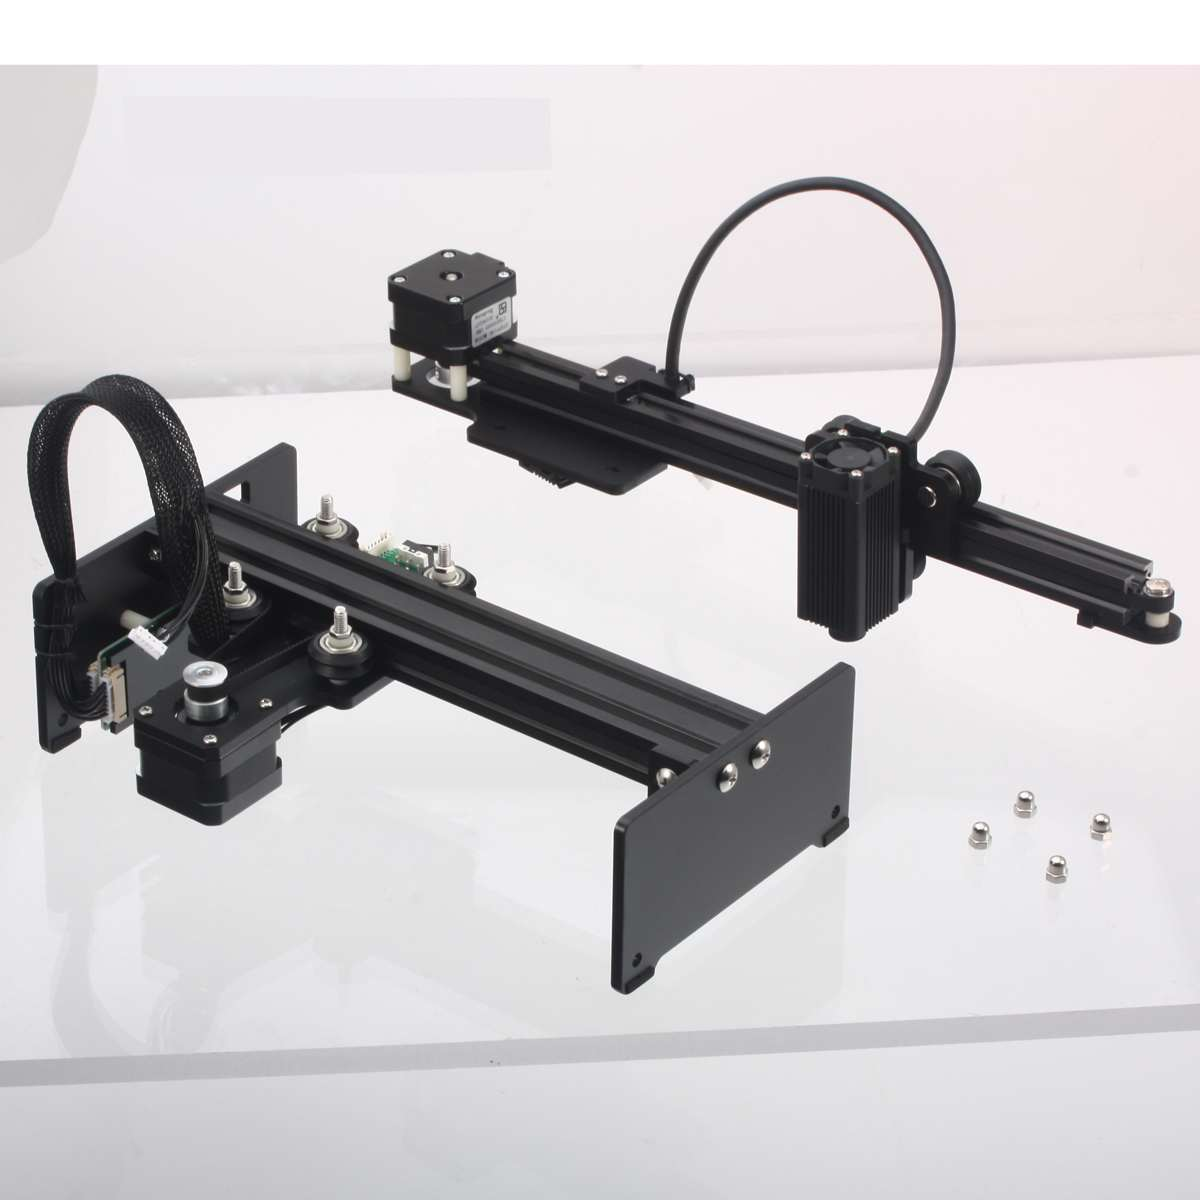 3500mw Wood Router Milling Machine CNC Engraving Machine 3.5W Laser Engraving Machine Carving Wood Router Tools